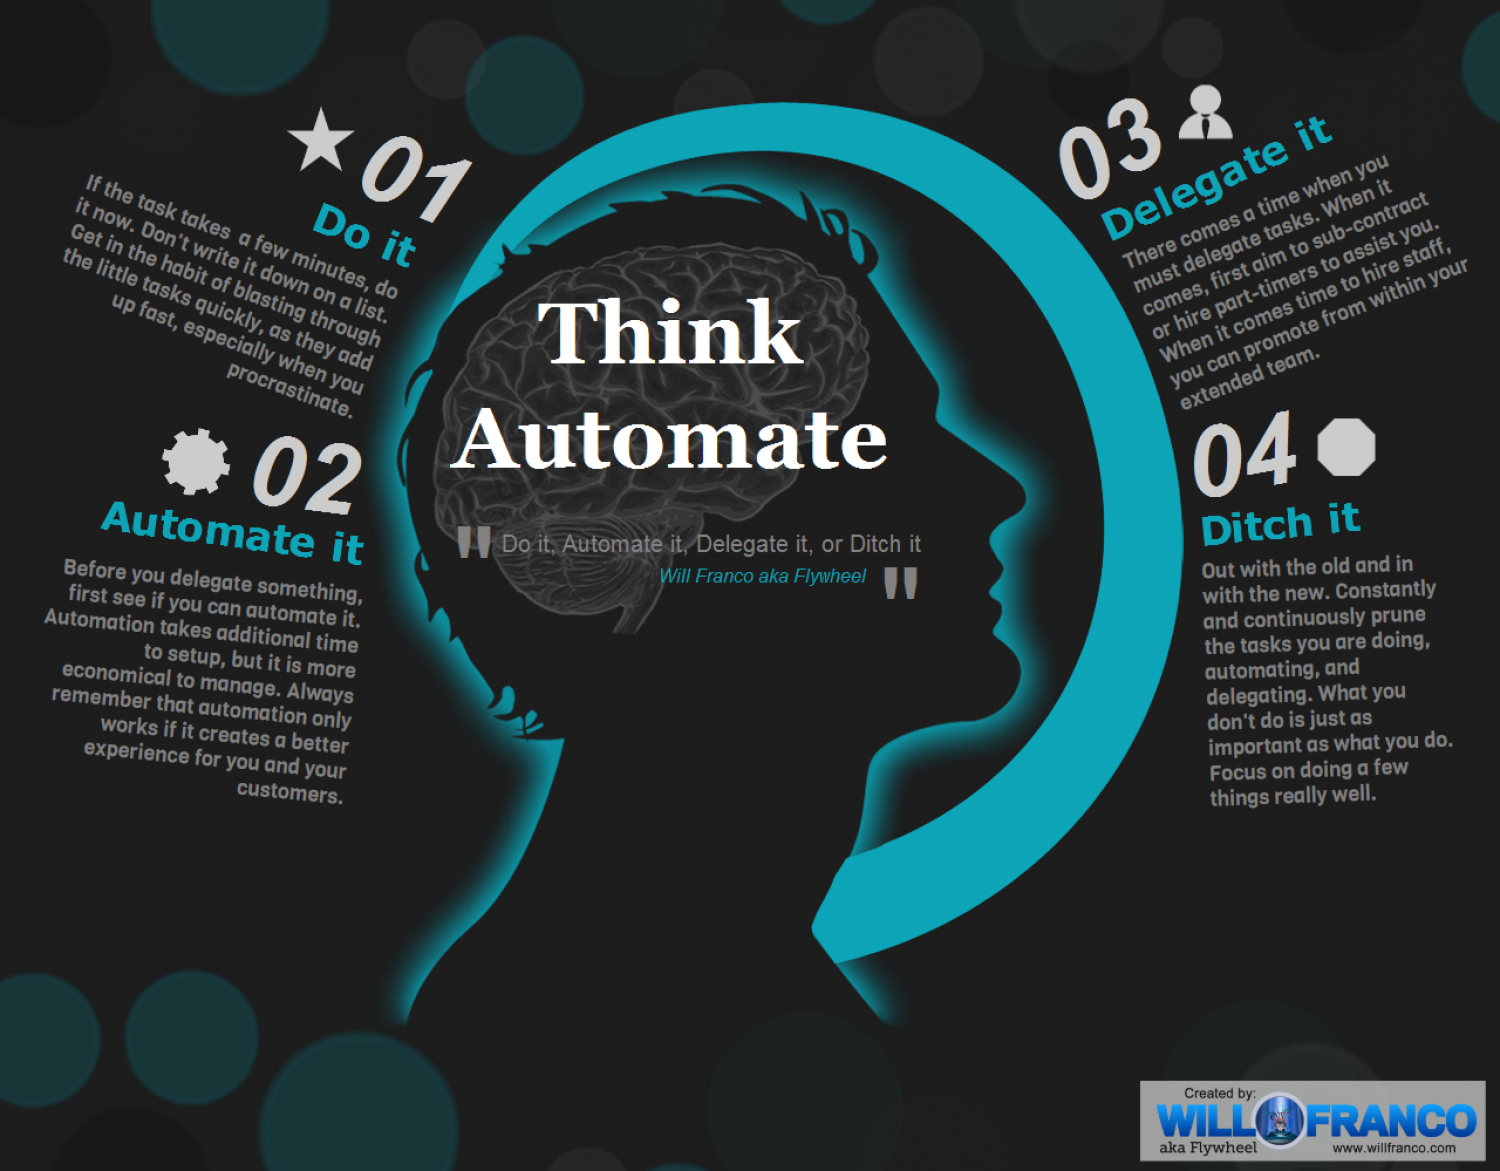 Do it, Automate it, Delegate it, or Ditch it Infographic